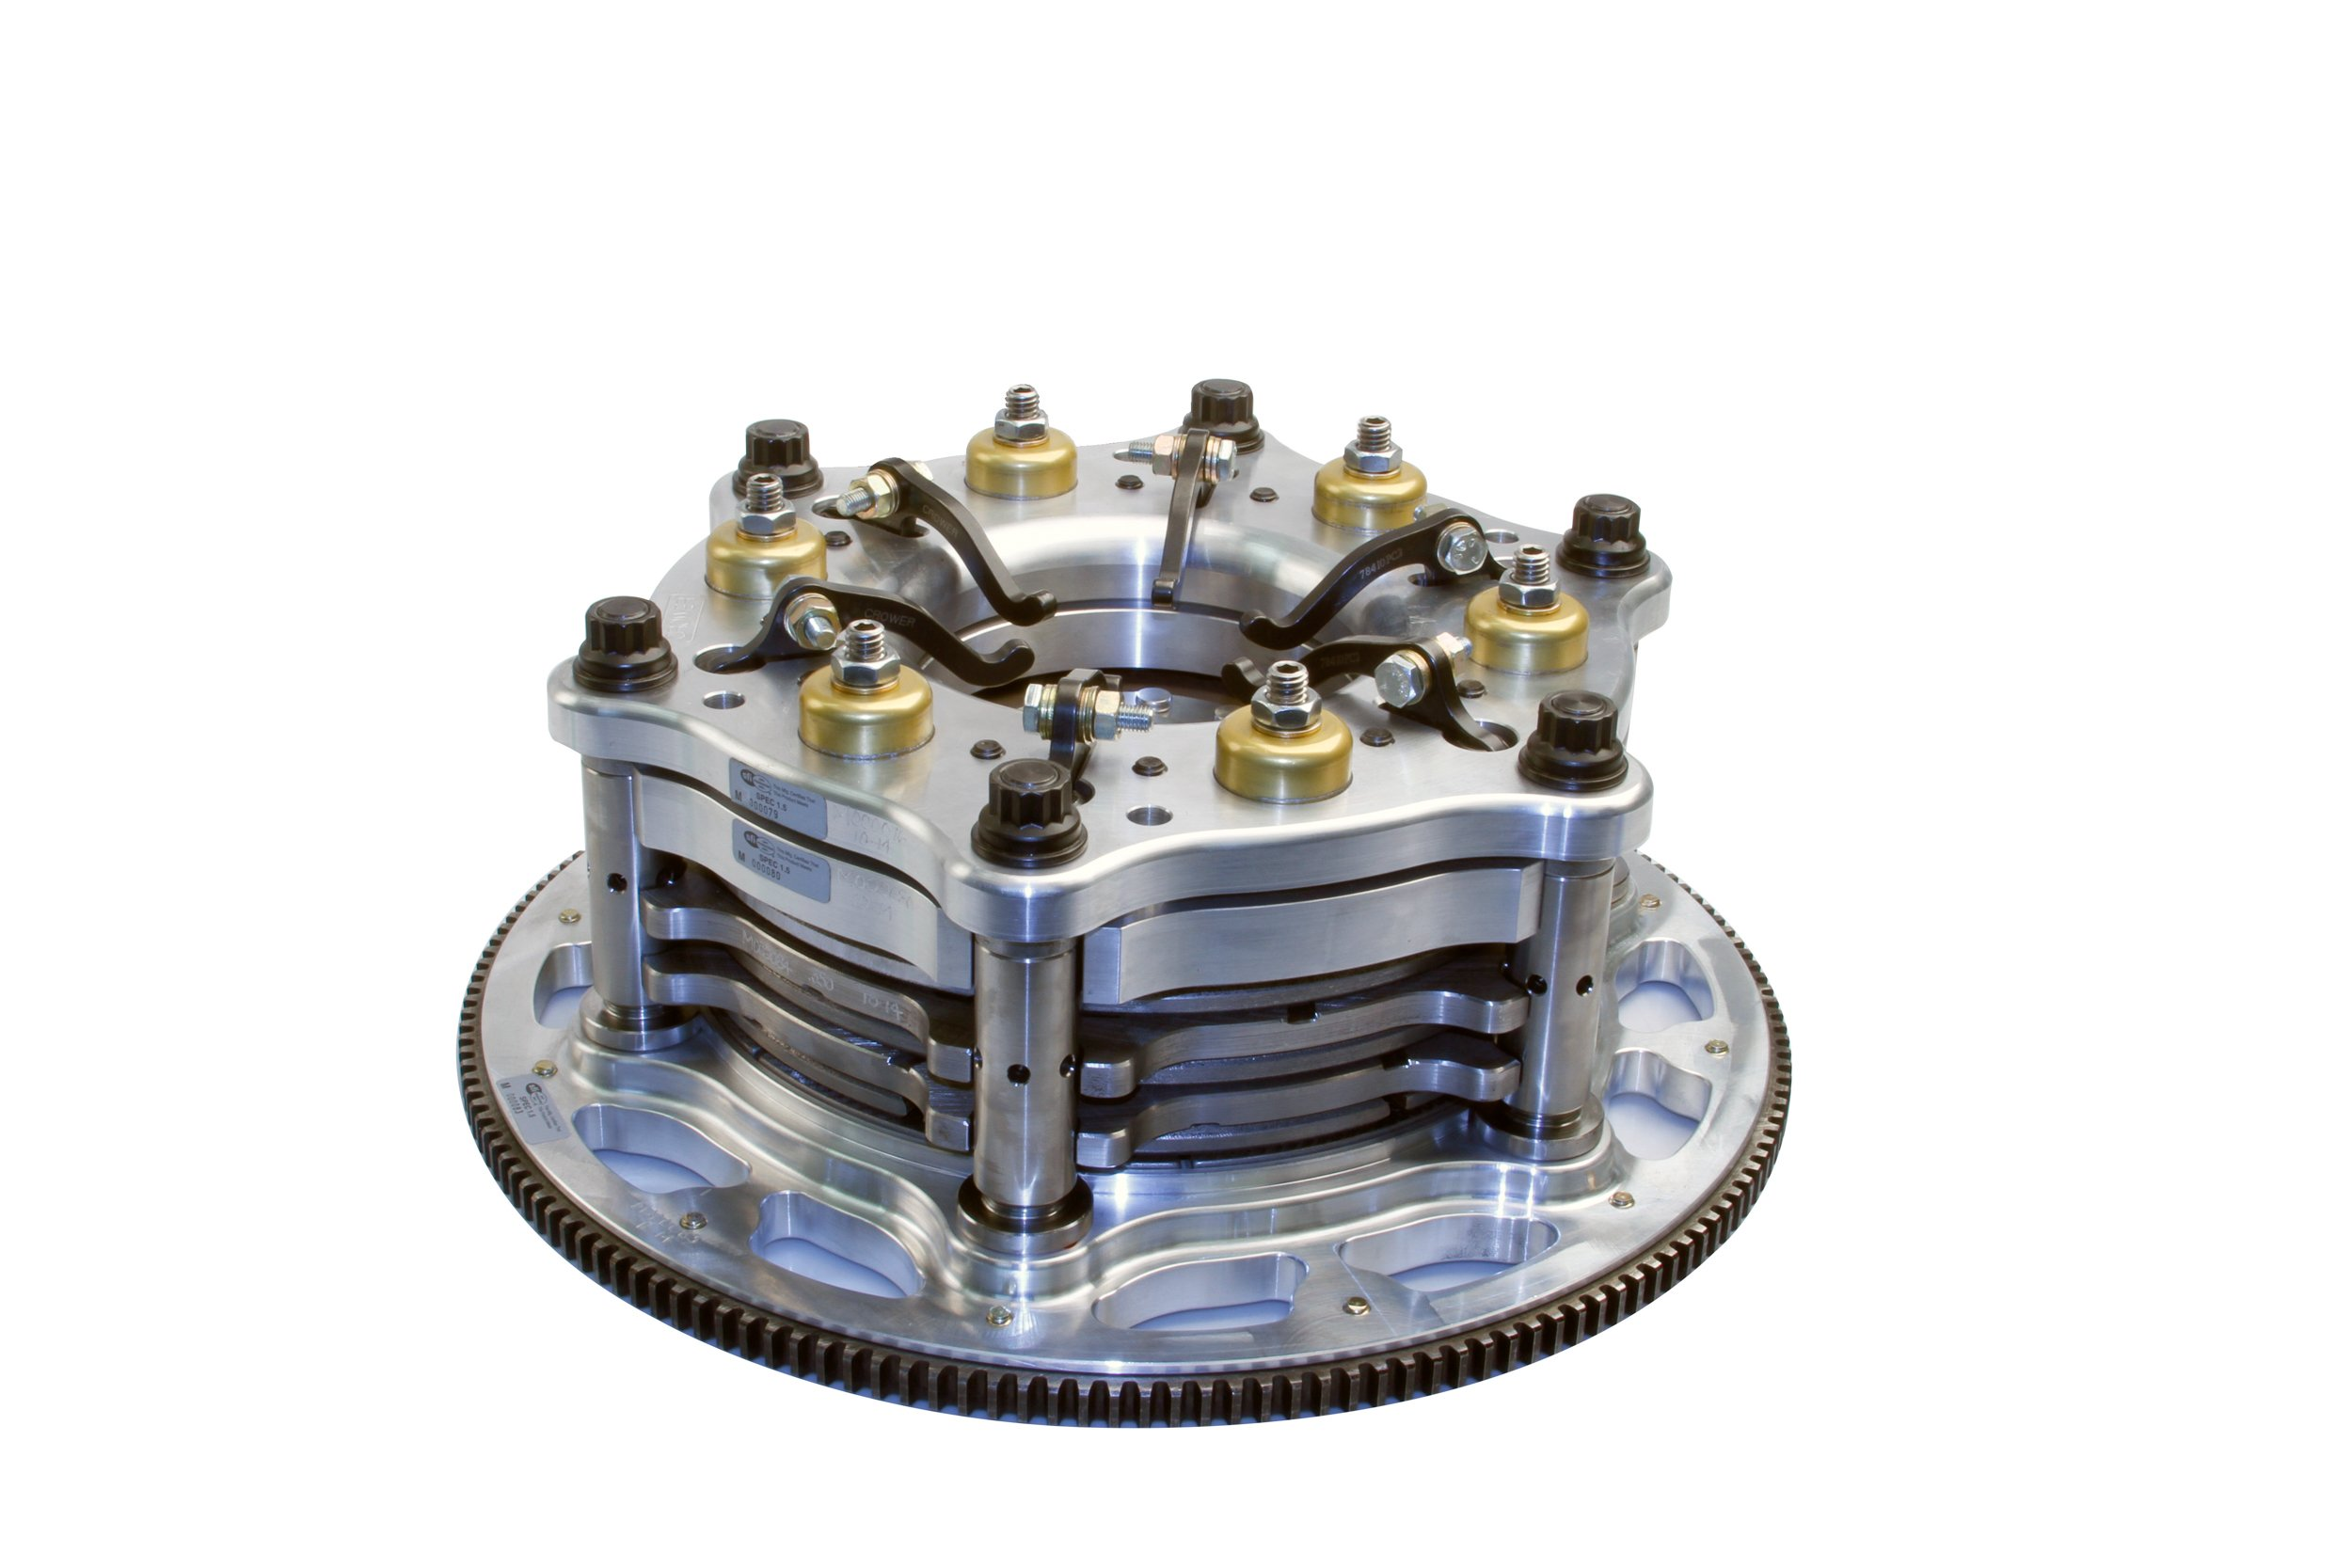 Torque Converter Drives: The Technology That's Changing Drag Racing